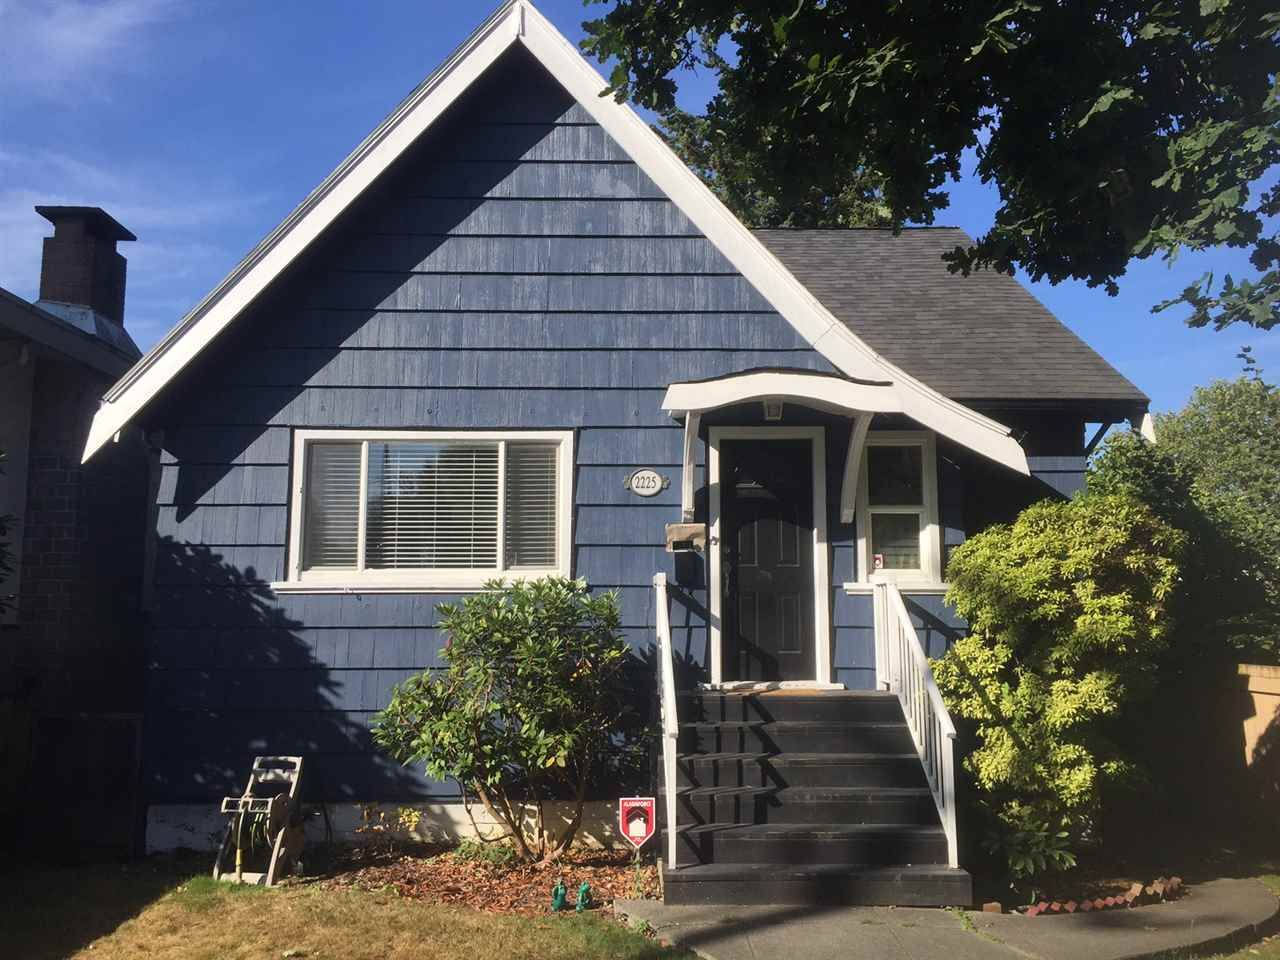 Photo 20: Photos: 2225 E 27TH AVENUE in Vancouver: Victoria VE House for sale (Vancouver East)  : MLS®# R2206387